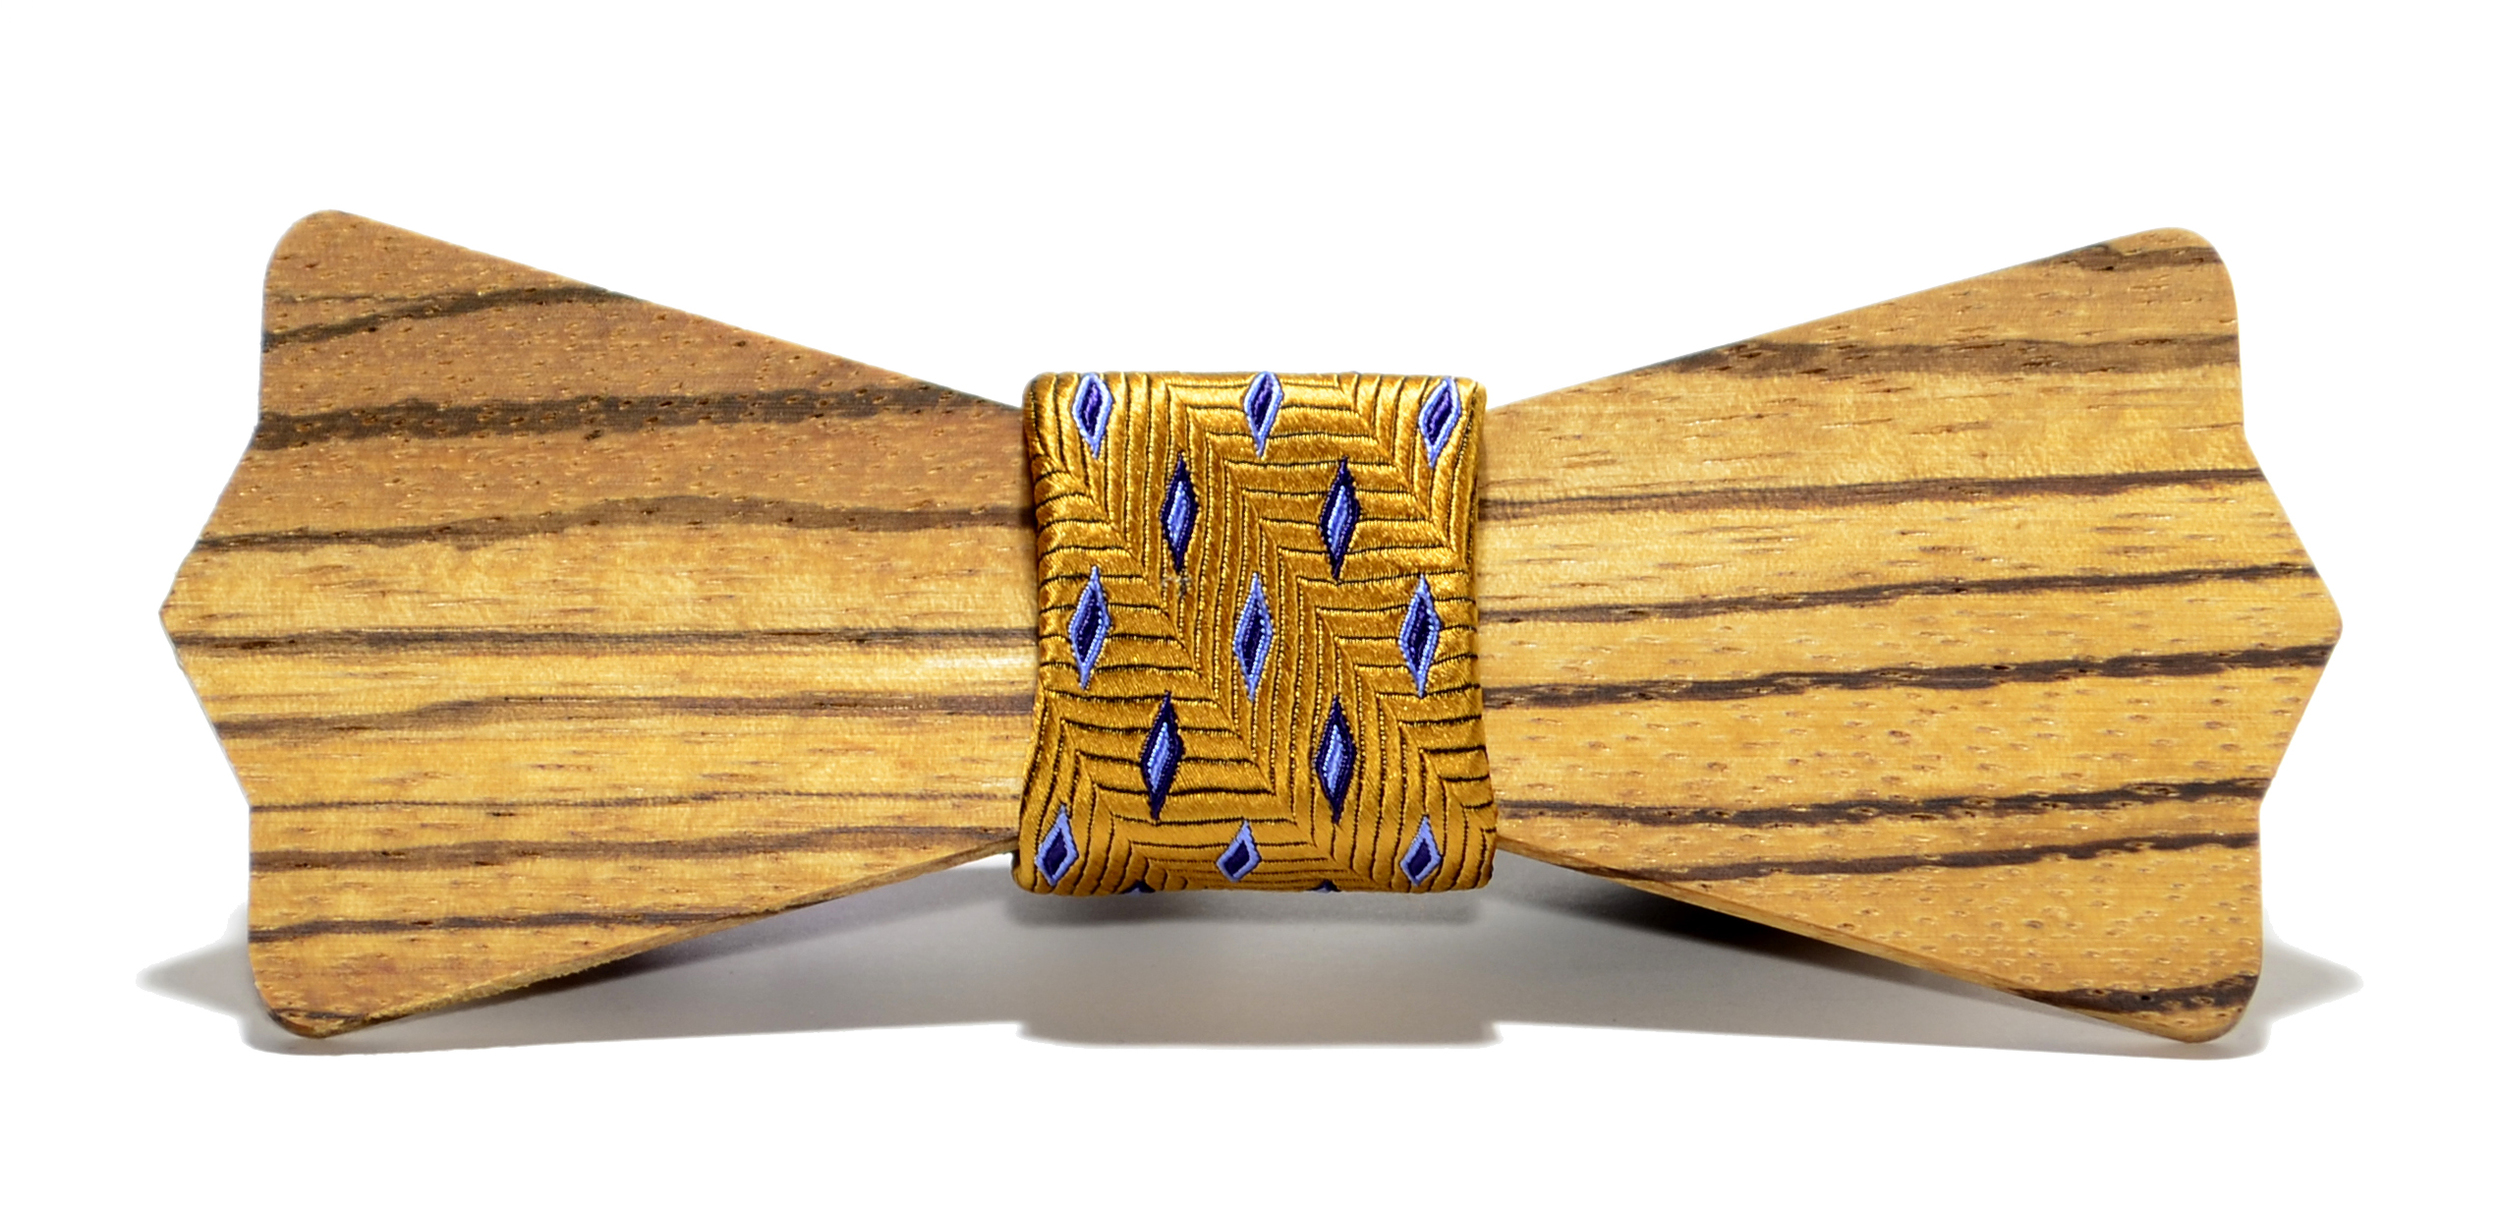 The Wall Street Zebrawood Diamond Point Wooden Bow Tie